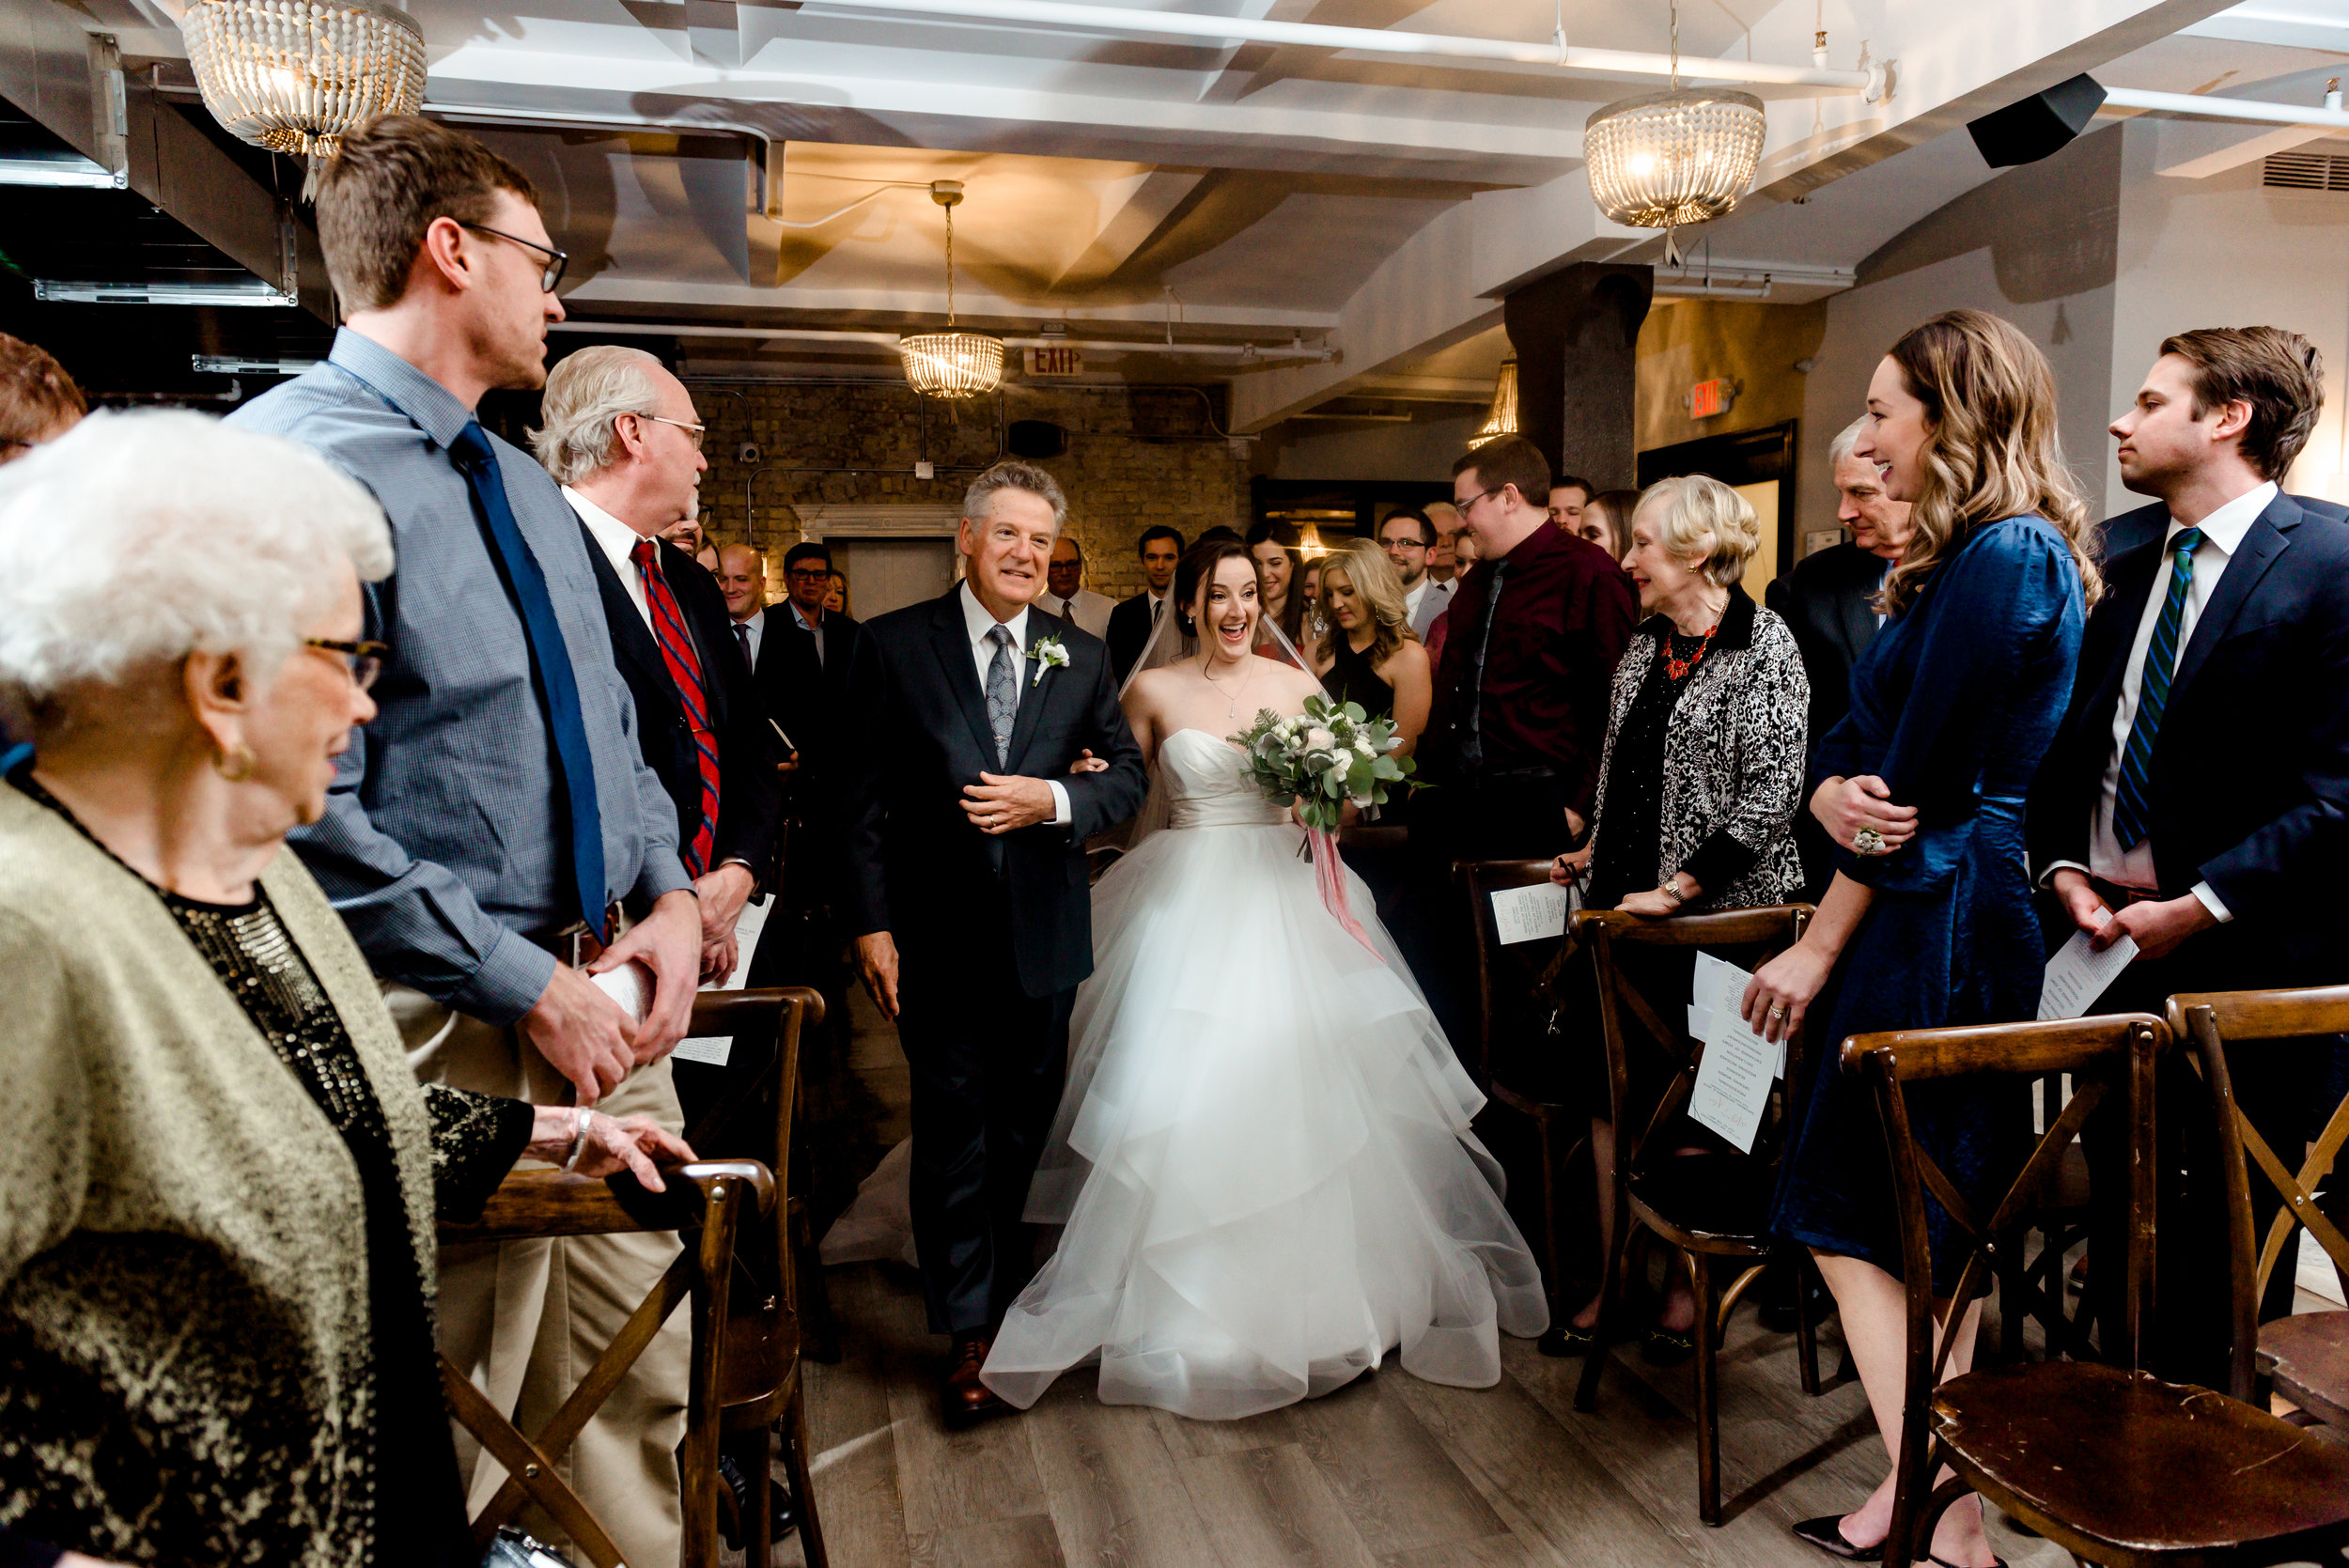 Minneapolis Night Wedding at Lumber Exchange Event Center - Best Twin Cities Wedding Photos